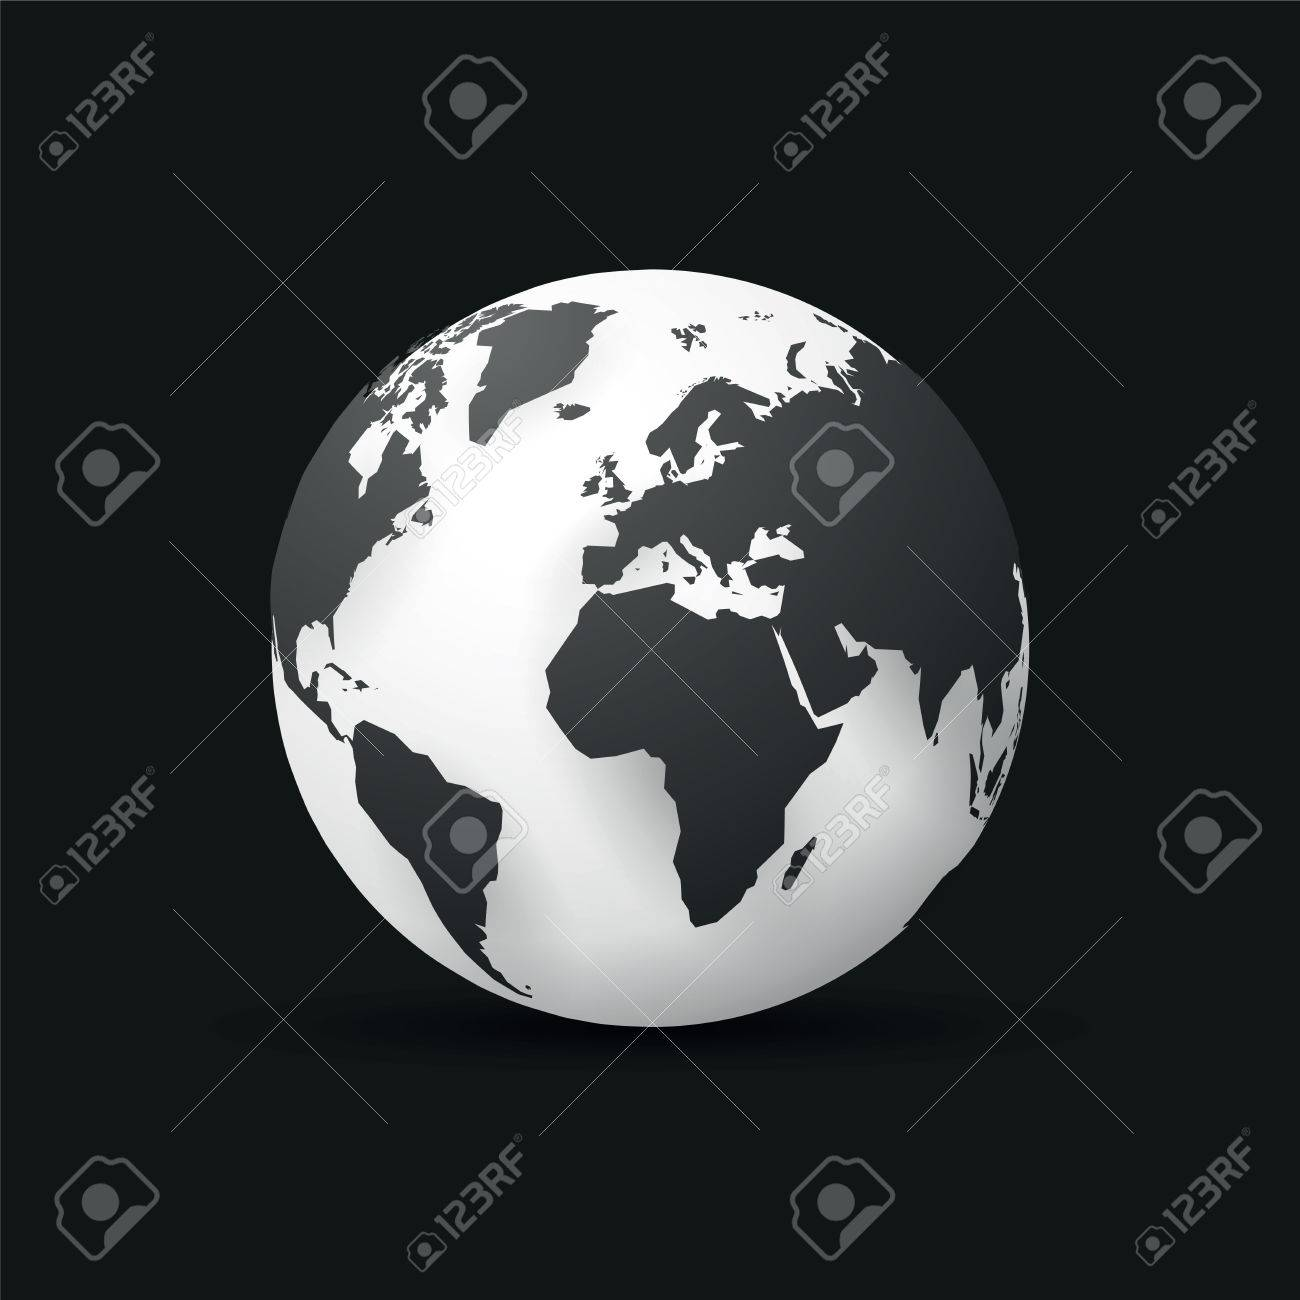 Black earth globe world map design royalty free cliparts vectors black earth globe world map design stock vector 72320216 gumiabroncs Image collections